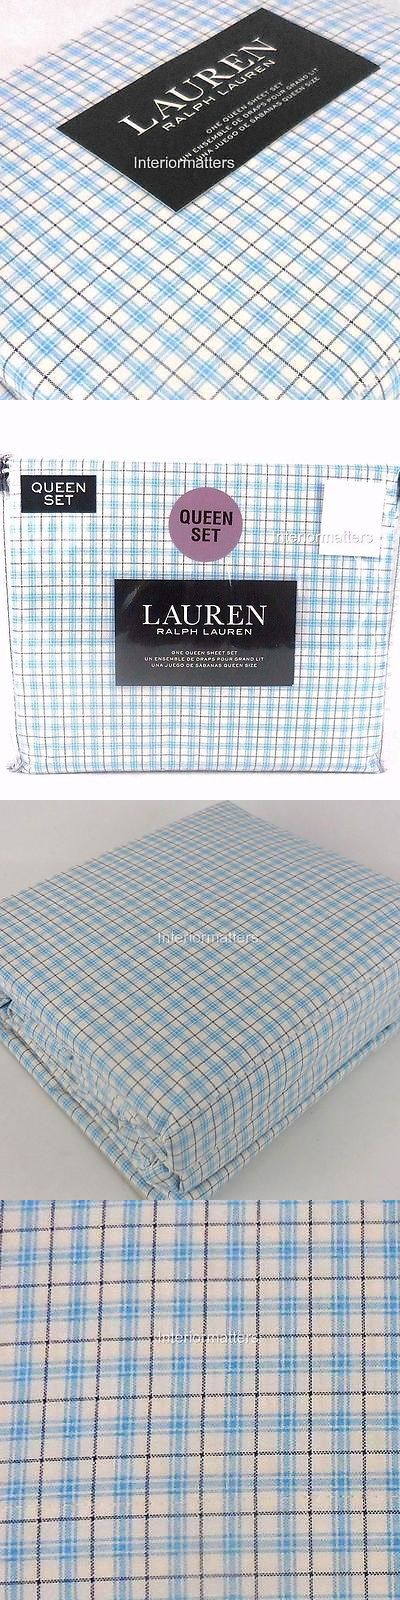 Sheets and Pillowcases 20460: Ralph Lauren Plaid 4Pc Queen Sheet Set Blue 100% Cotton Extra Deep New -> BUY IT NOW ONLY: $78.96 on eBay!